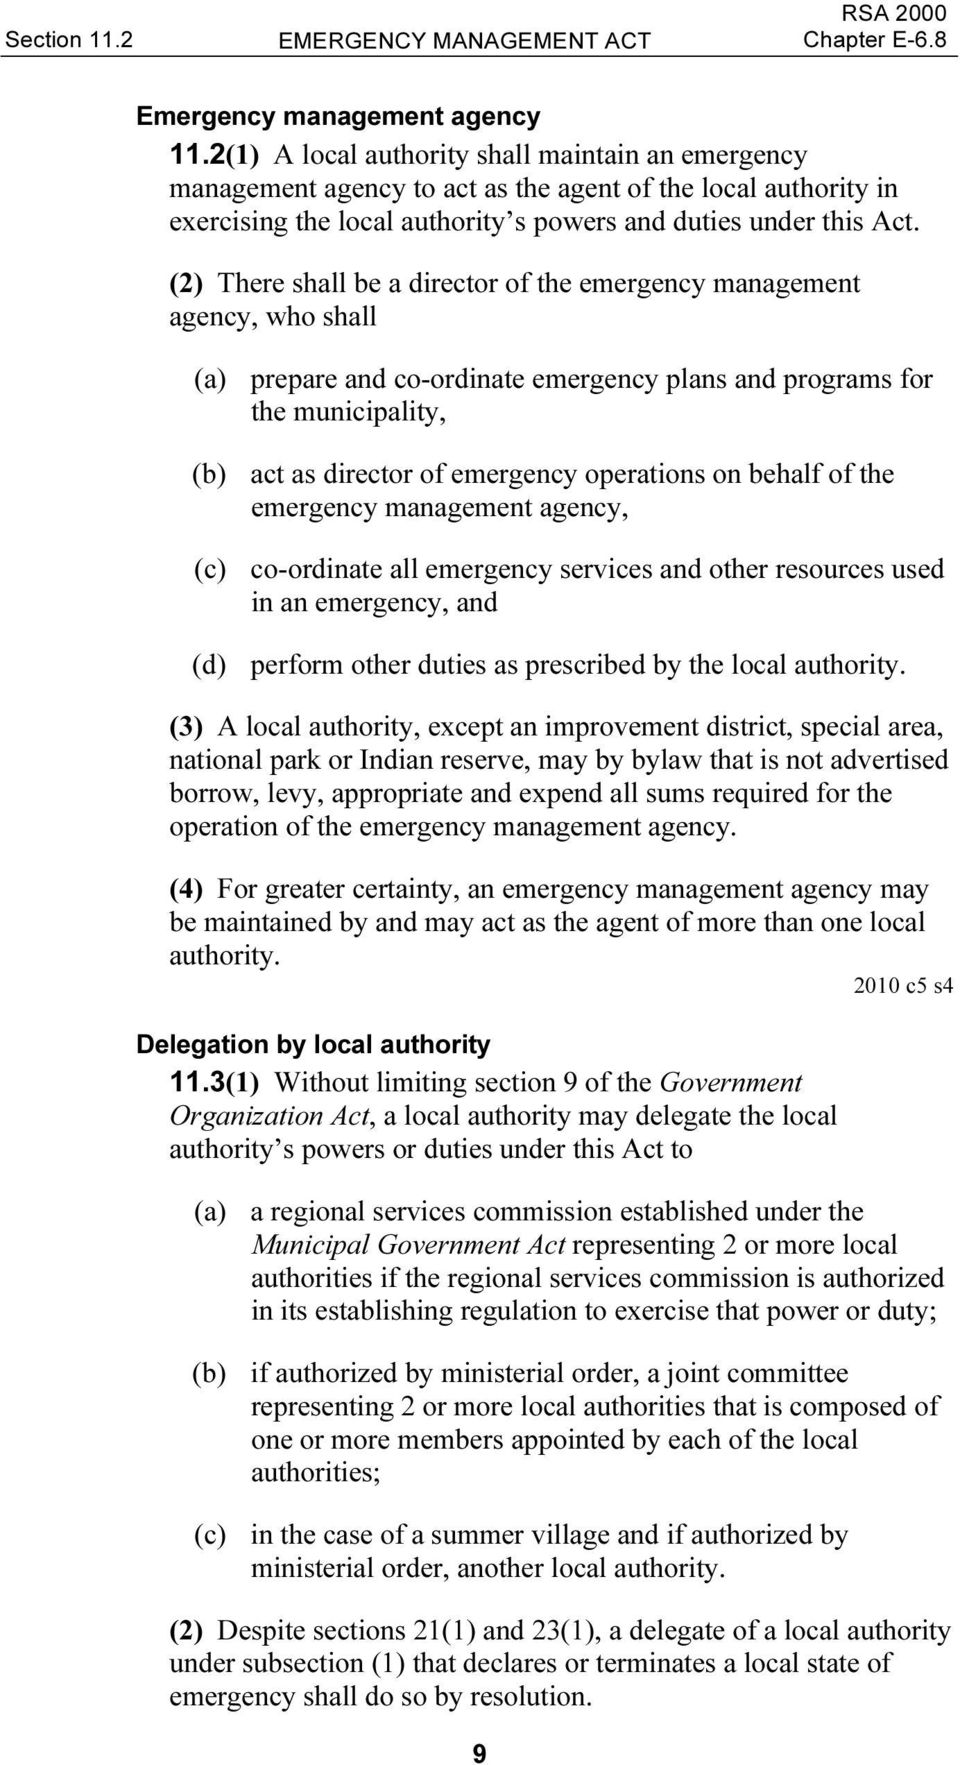 (2) There shall be a director of the emergency management agency, who shall (a) prepare and co-ordinate emergency plans and programs for the municipality, (b) act as director of emergency operations